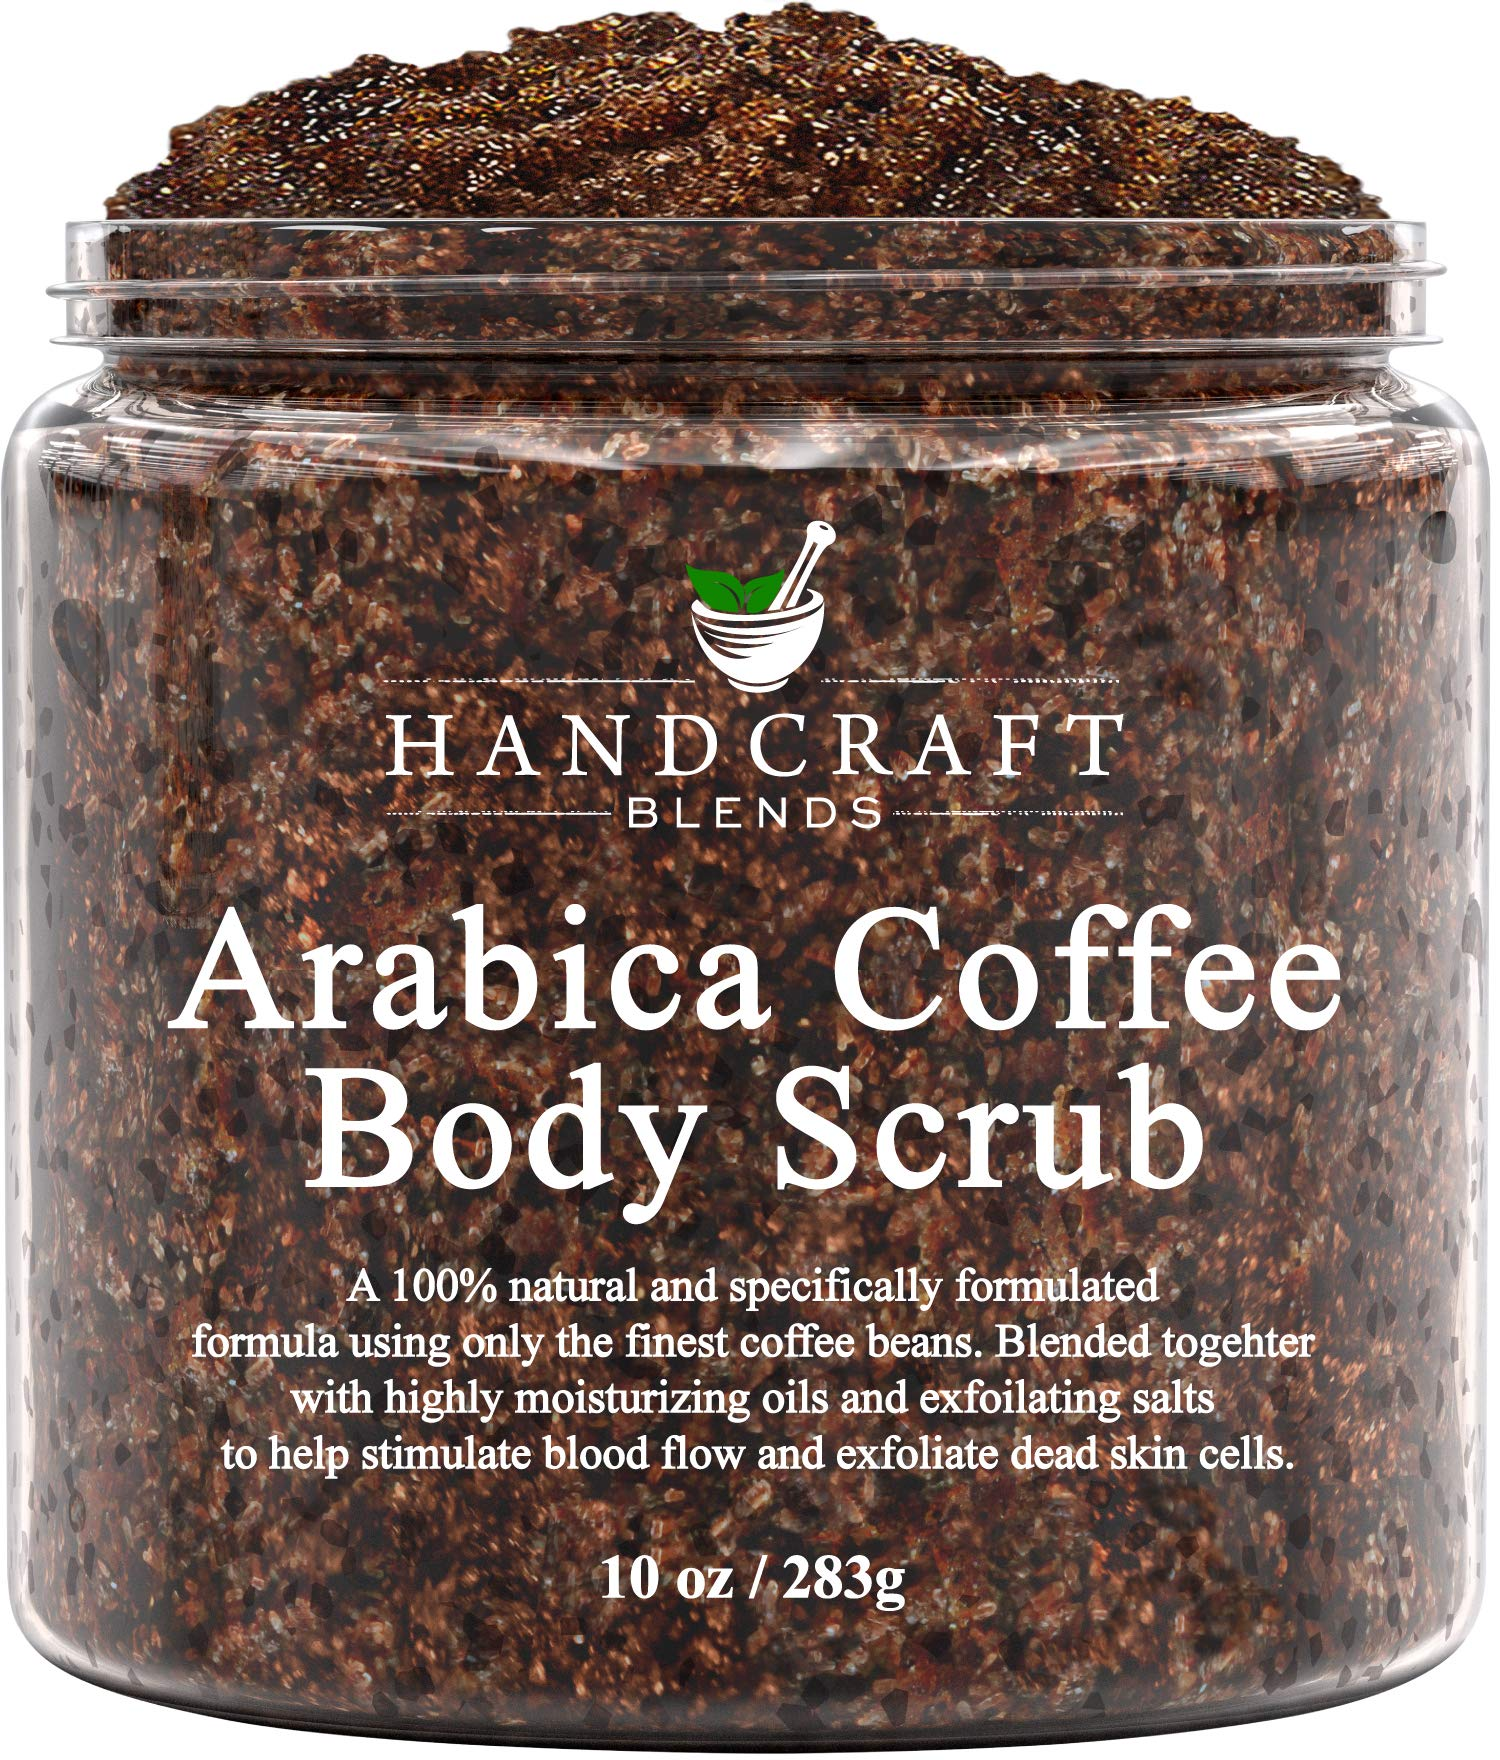 Handcraft Arabica Coffee Body Scrub - All Natural with Organic Ingredients - for Stretch Marks, Acne, Anti Cellulite and Spider Veins 10 oz by Handcraft Blends